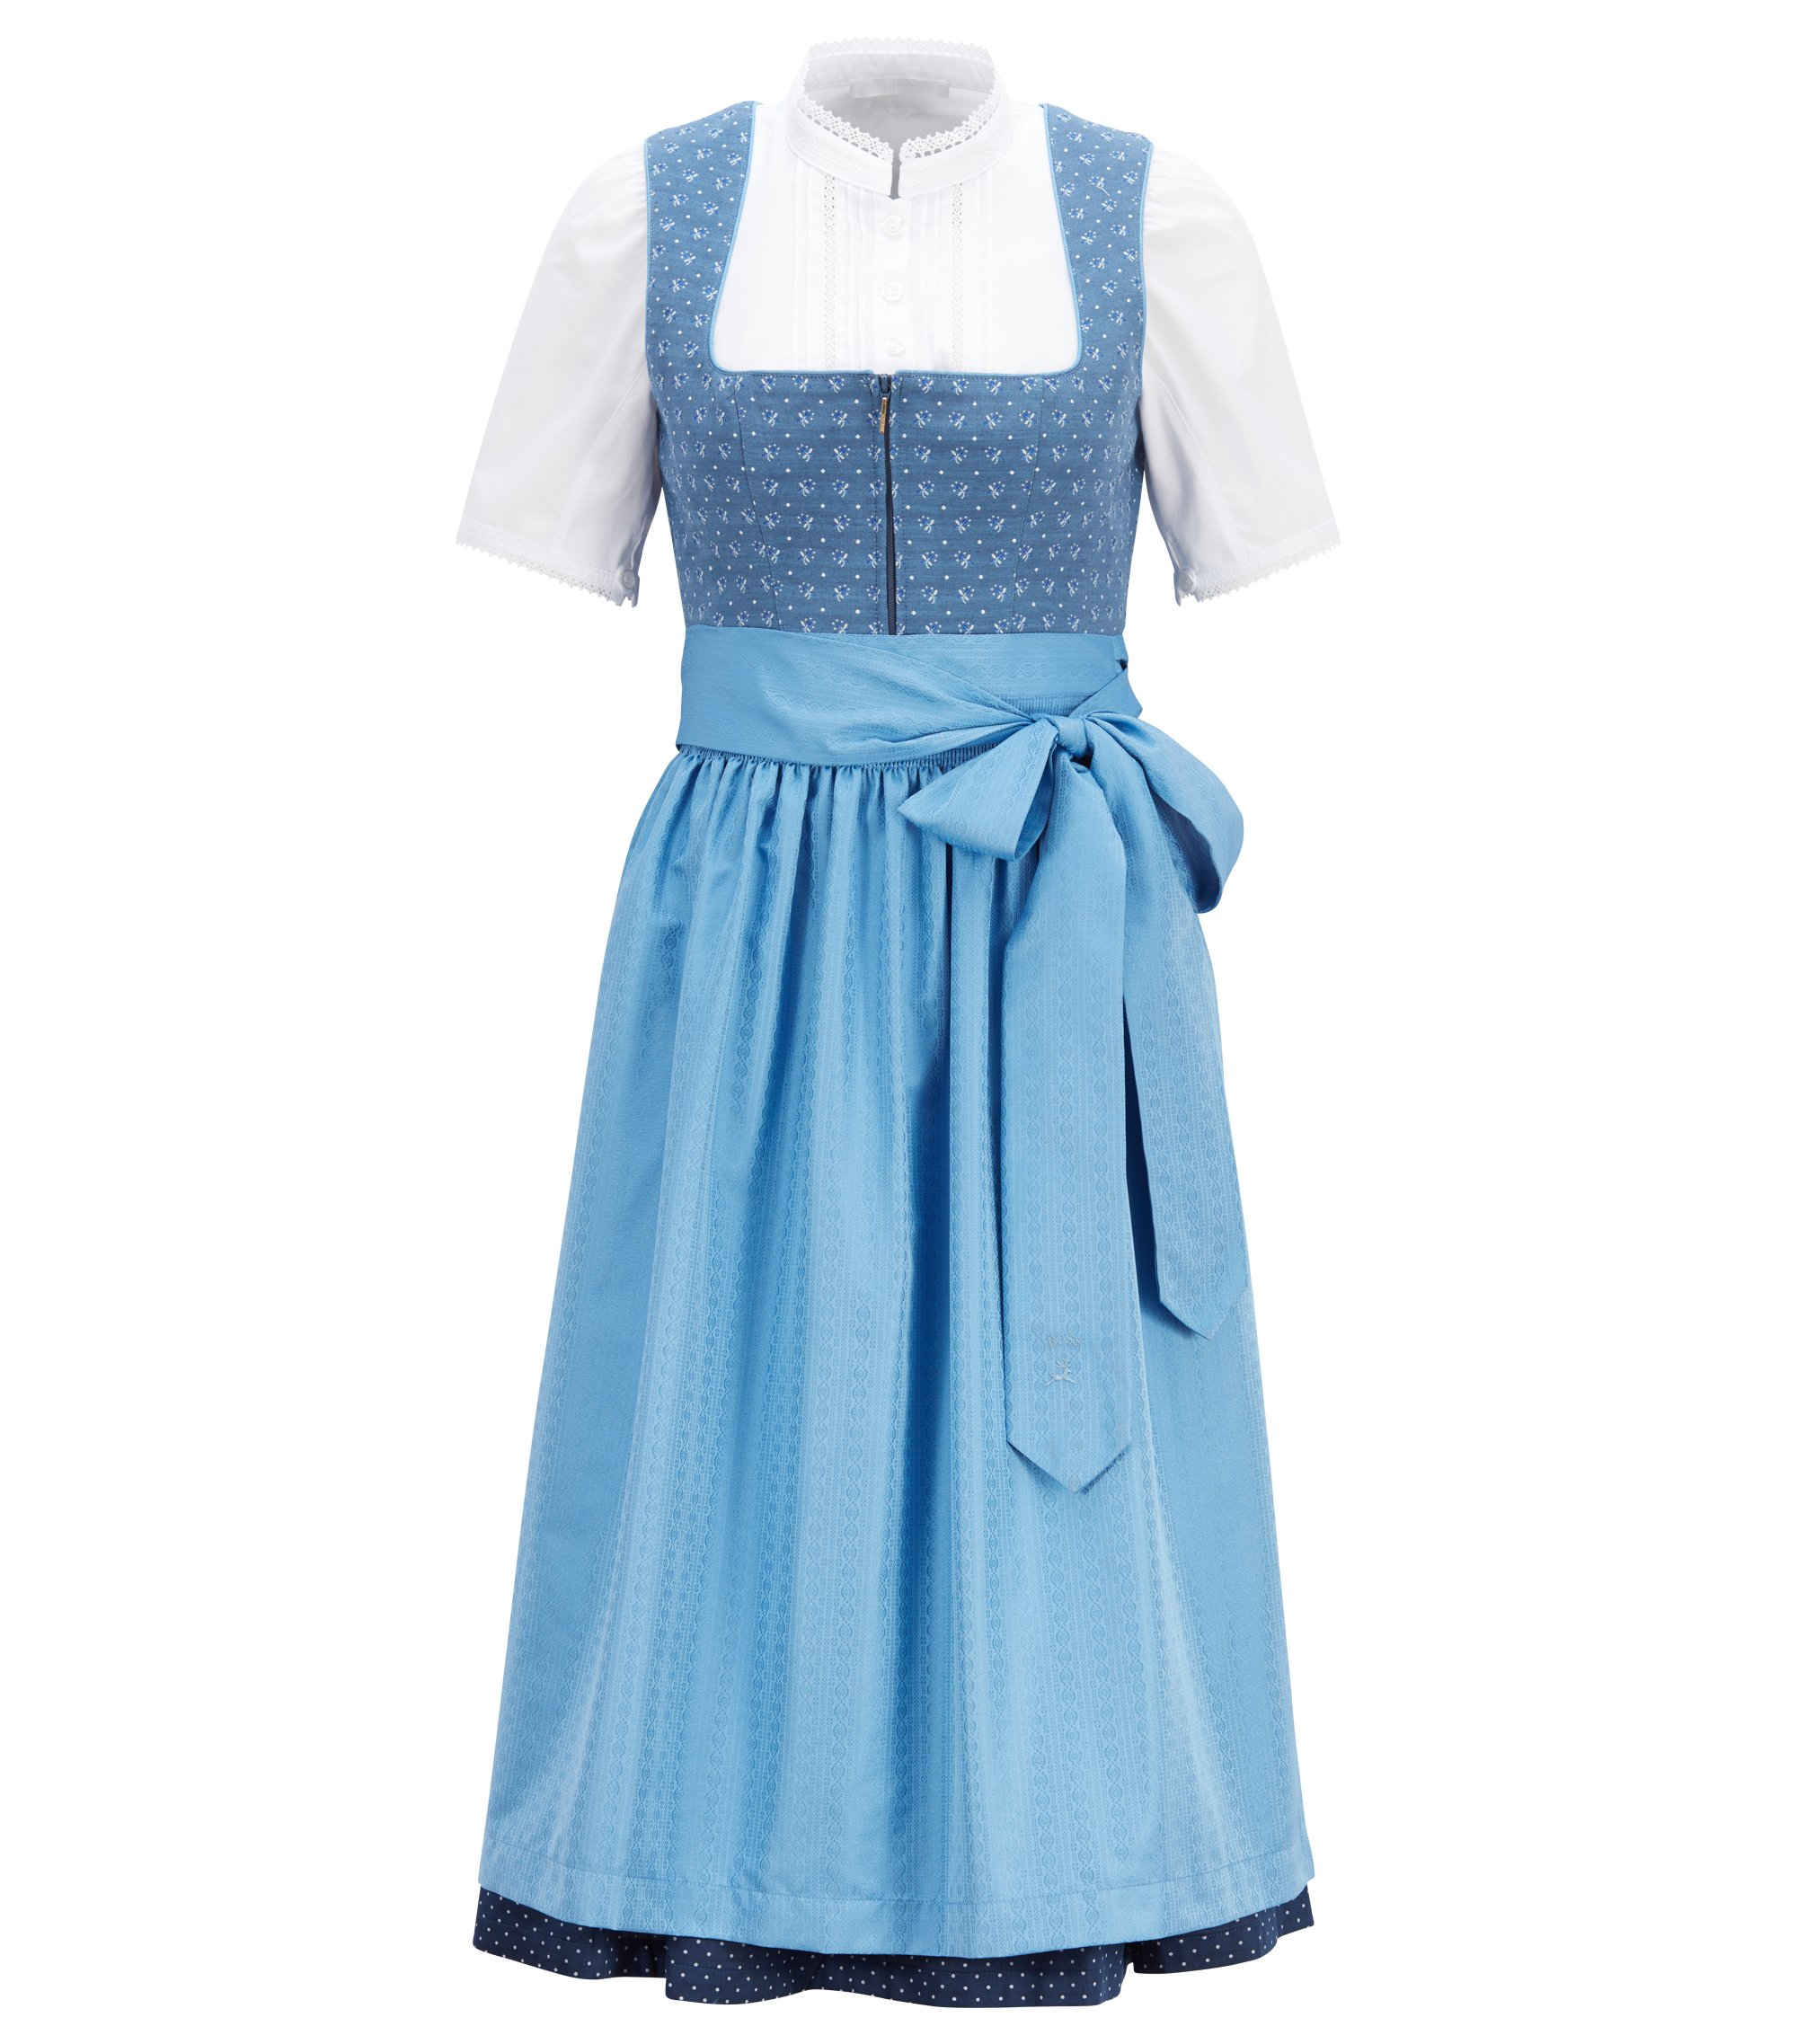 Patterned dirndl with lace-trimmed blouse, Patterned